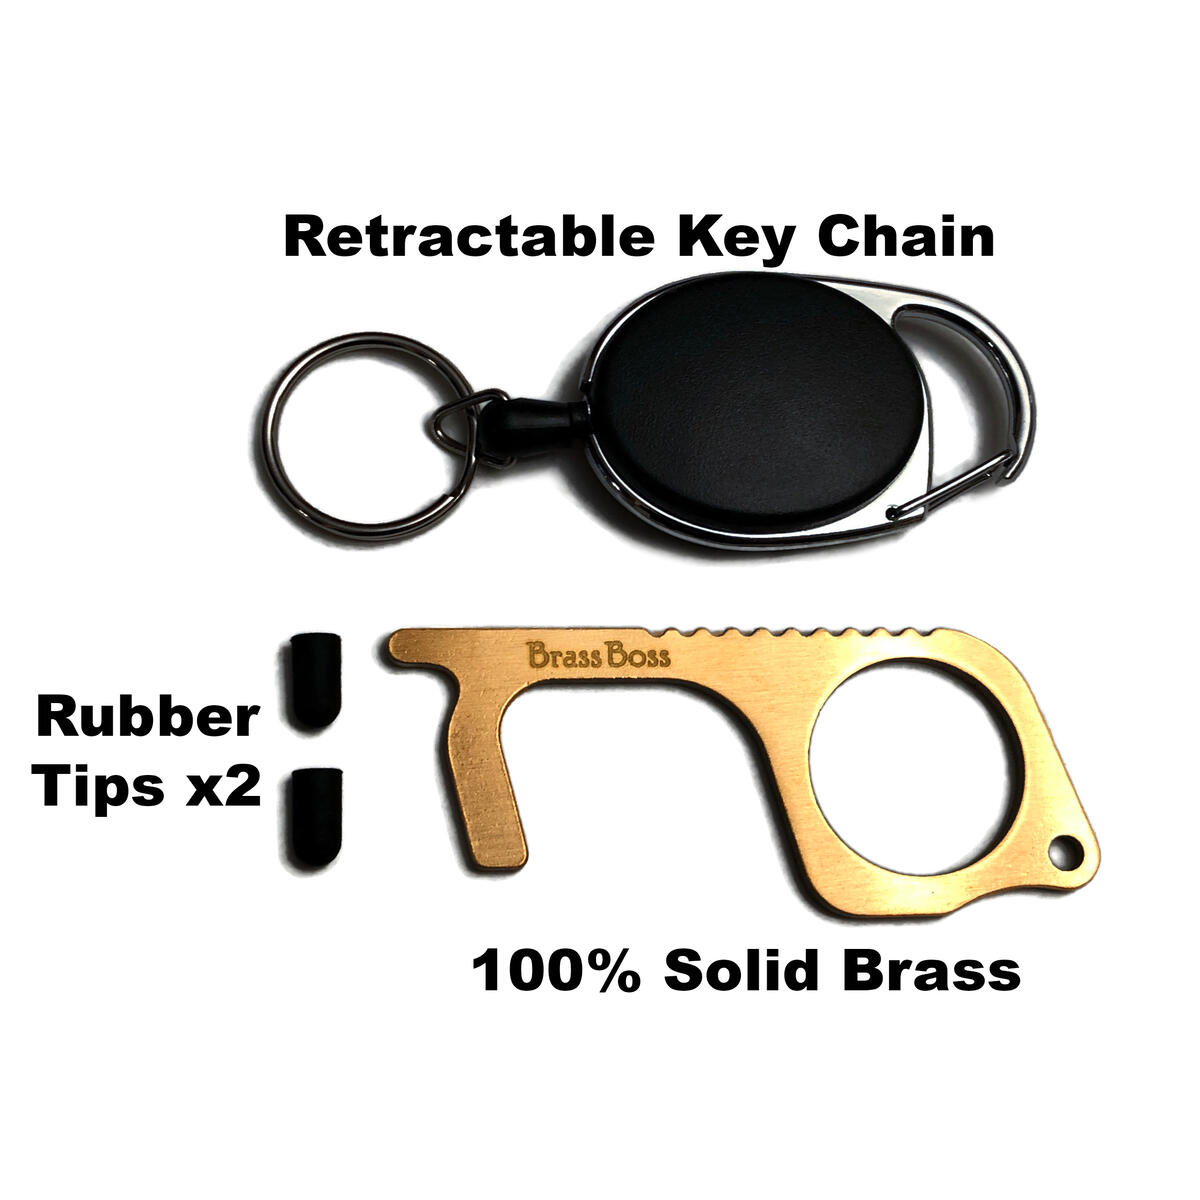 No Touch Door Opener - Brass, Contactless Hand Tool - Protective Safety Hook/Stylus for ATM, Elevator Buttons, Handles - With Retractable Carabiner Reel Clip Keychain, 2 Rubber Tips, Card - Brass Boss